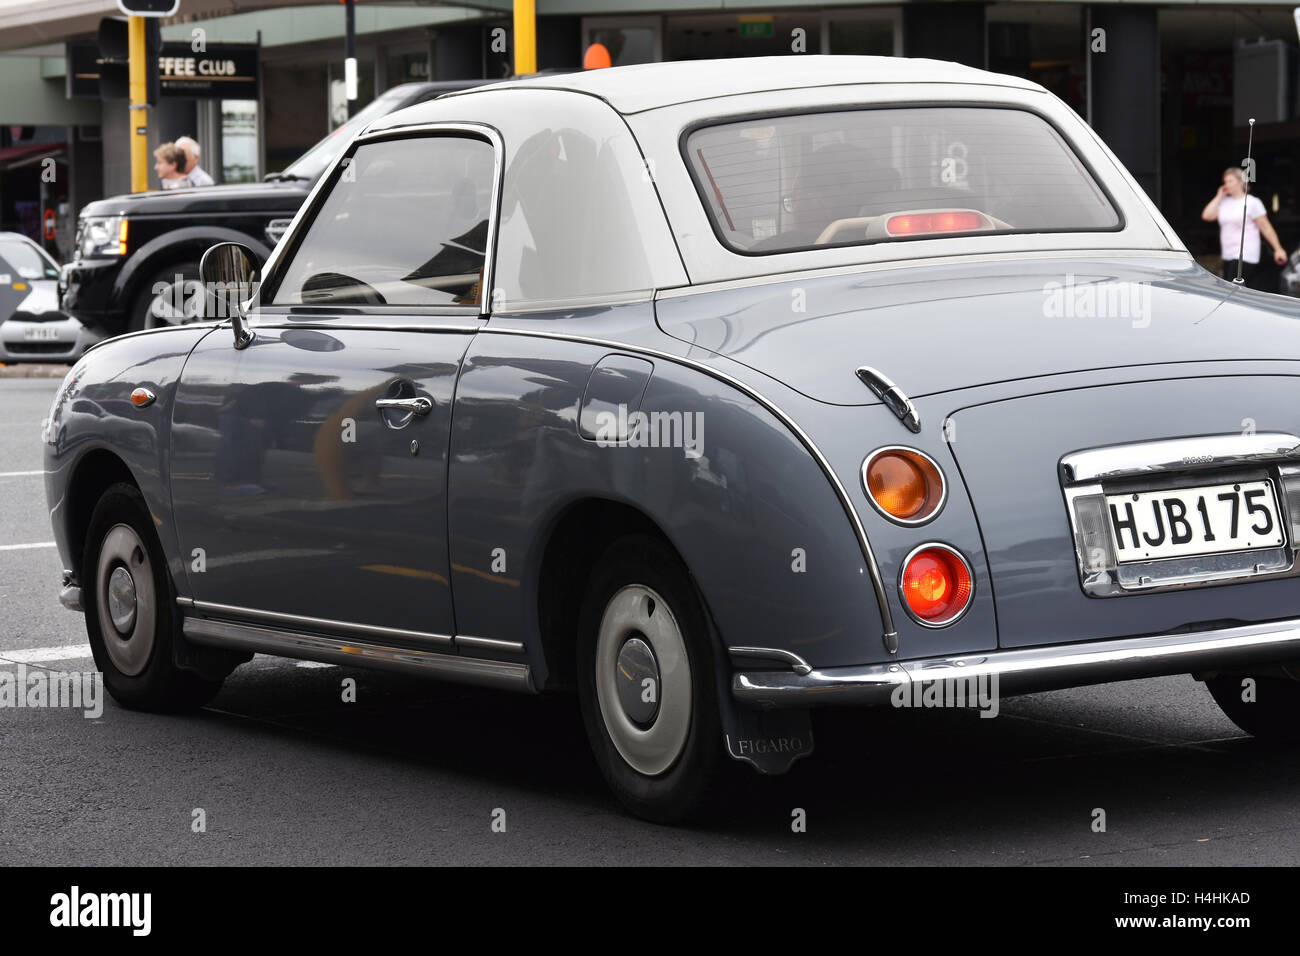 Gray Blue Vintage Car Nissan Figaro At Intersection Stock Photo